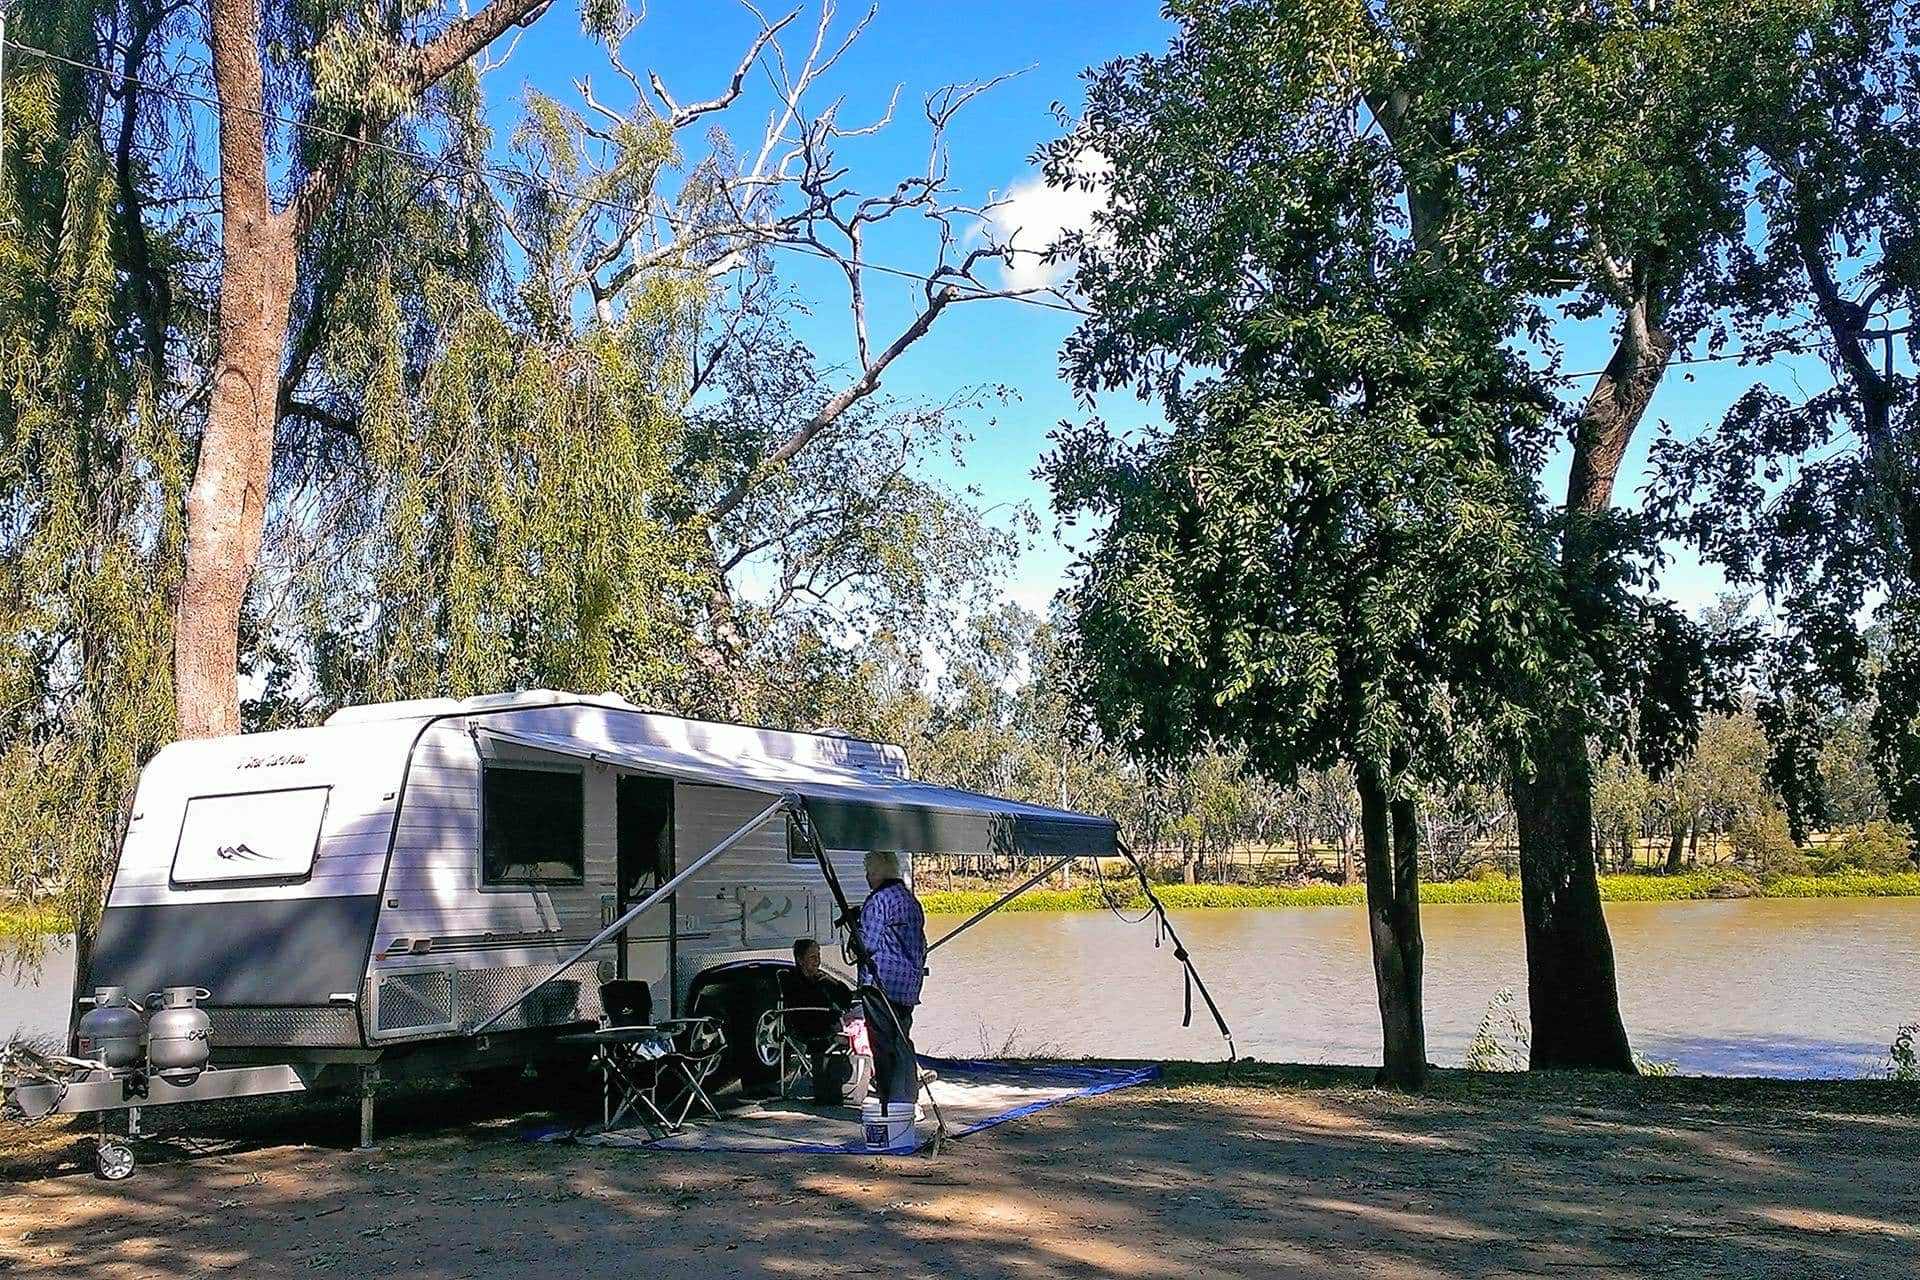 How To Gps A Phone >> Camping at Neville Hewitt Weir, Baralaba in the Banana Shire